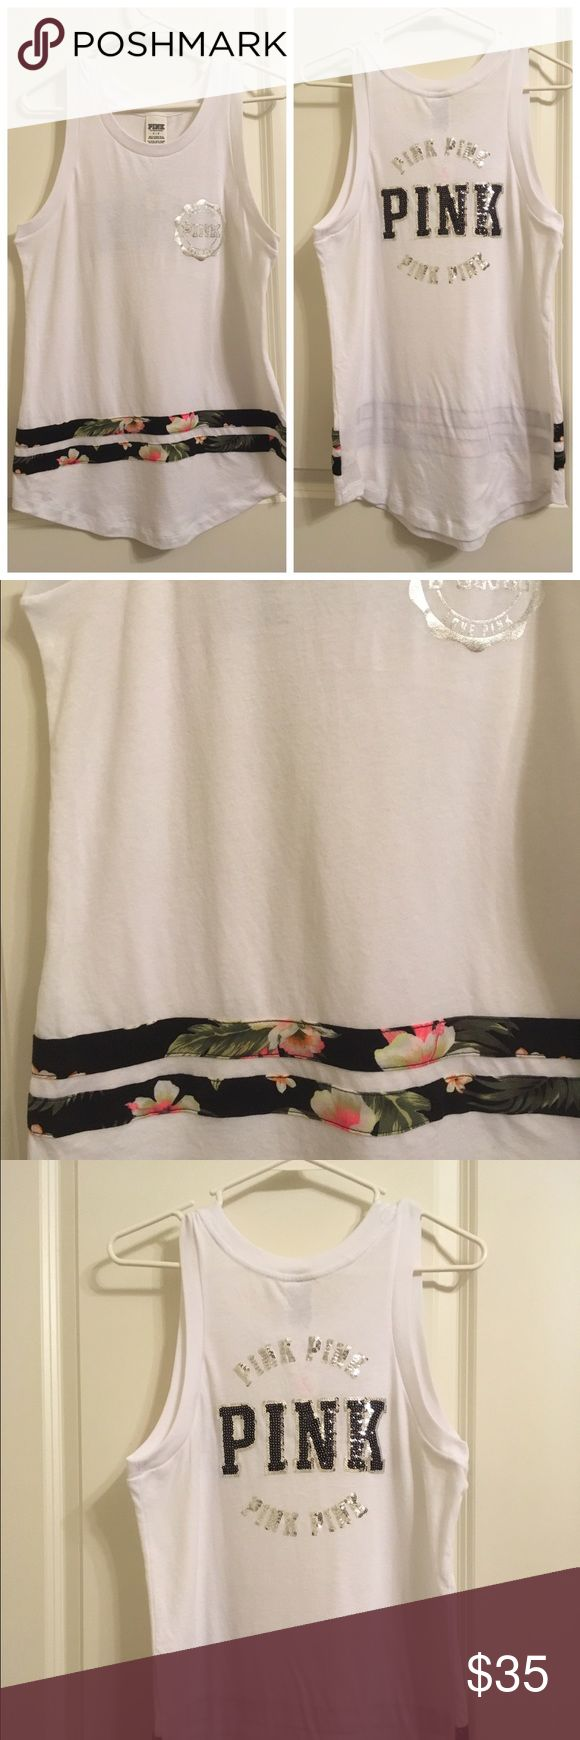 VS PINK Sequin Tank Top Victoria's Secret White Sequin Tank Top.                       PINK COLLECTION 😍                                                    🌸New with Tags!                                                          🌸Bundle to Save! PINK Victoria's Secret Tops Tank Tops